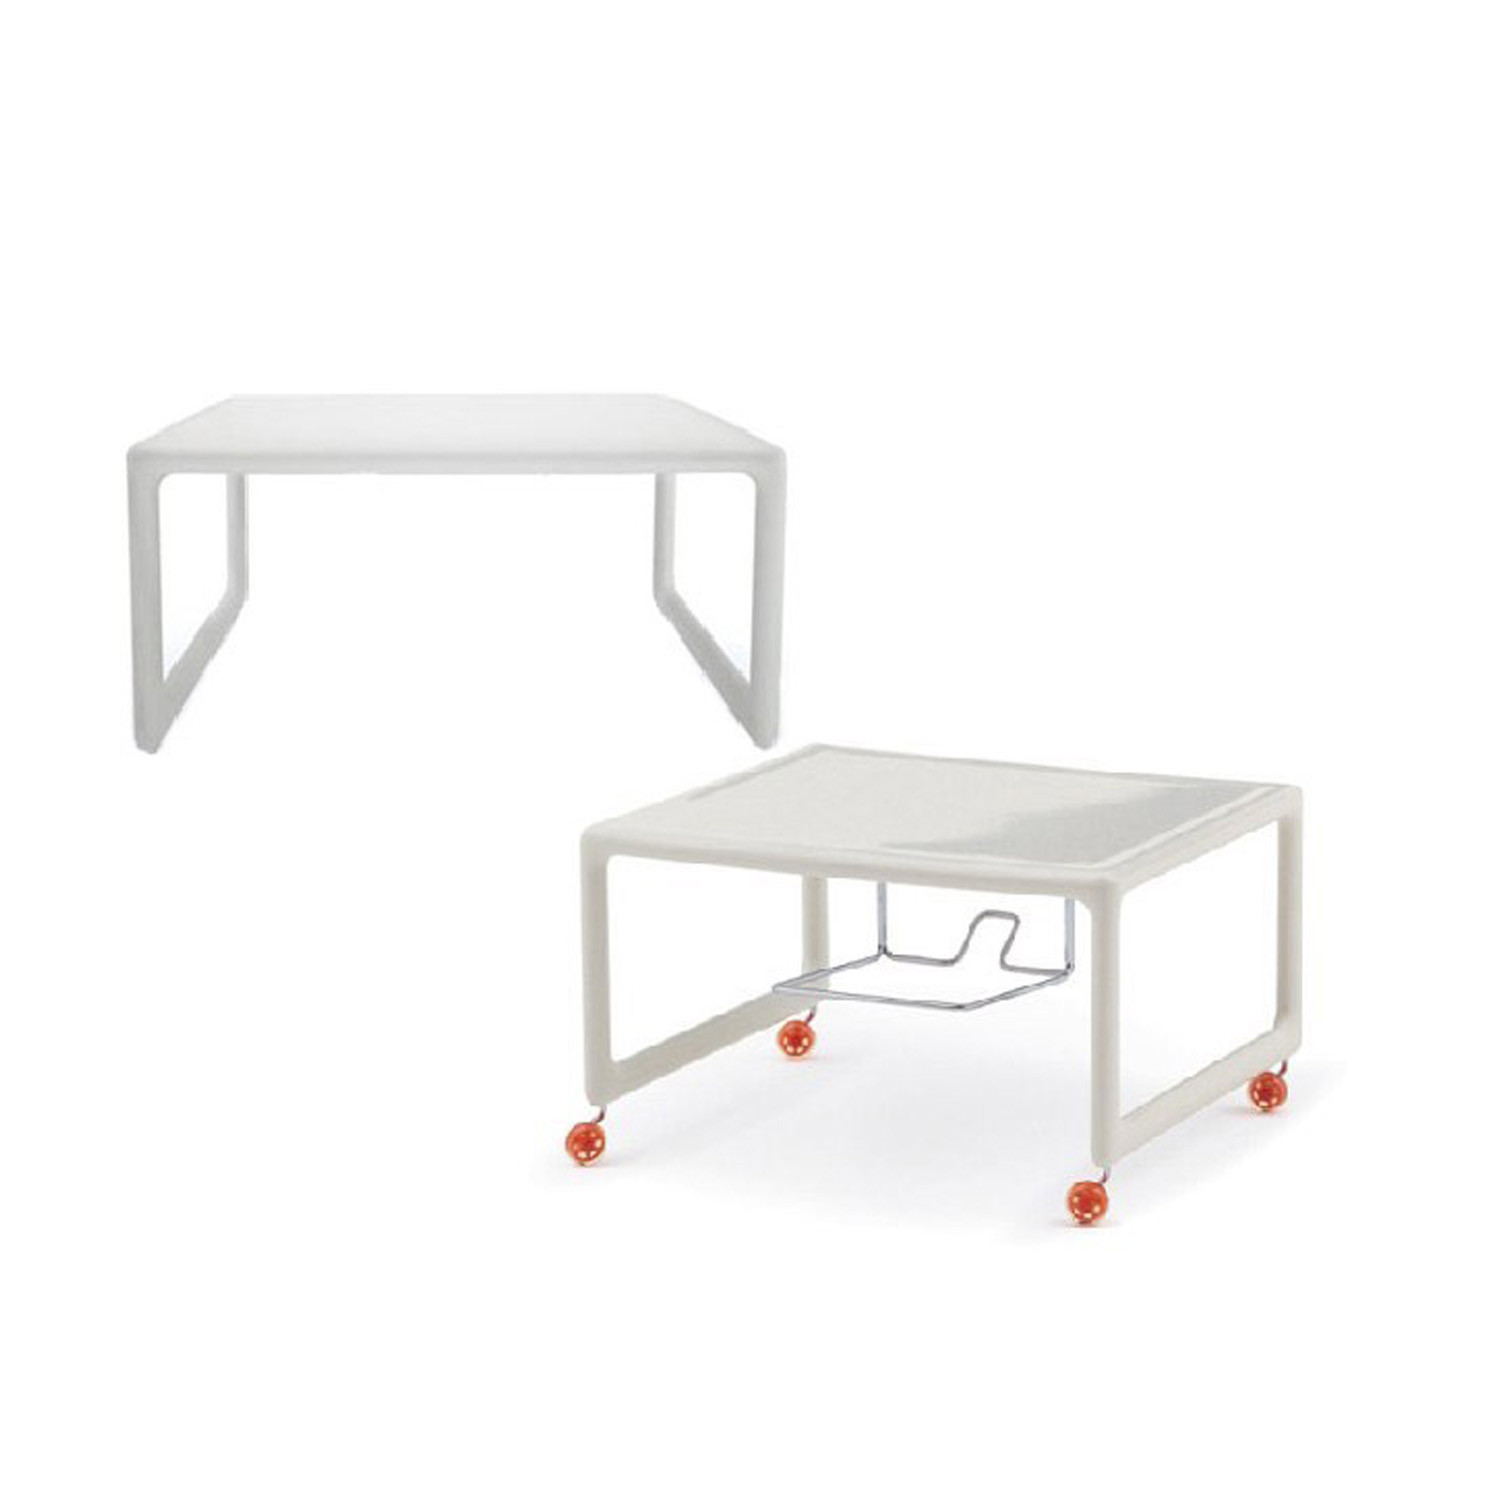 Low Air Tables  by Magis